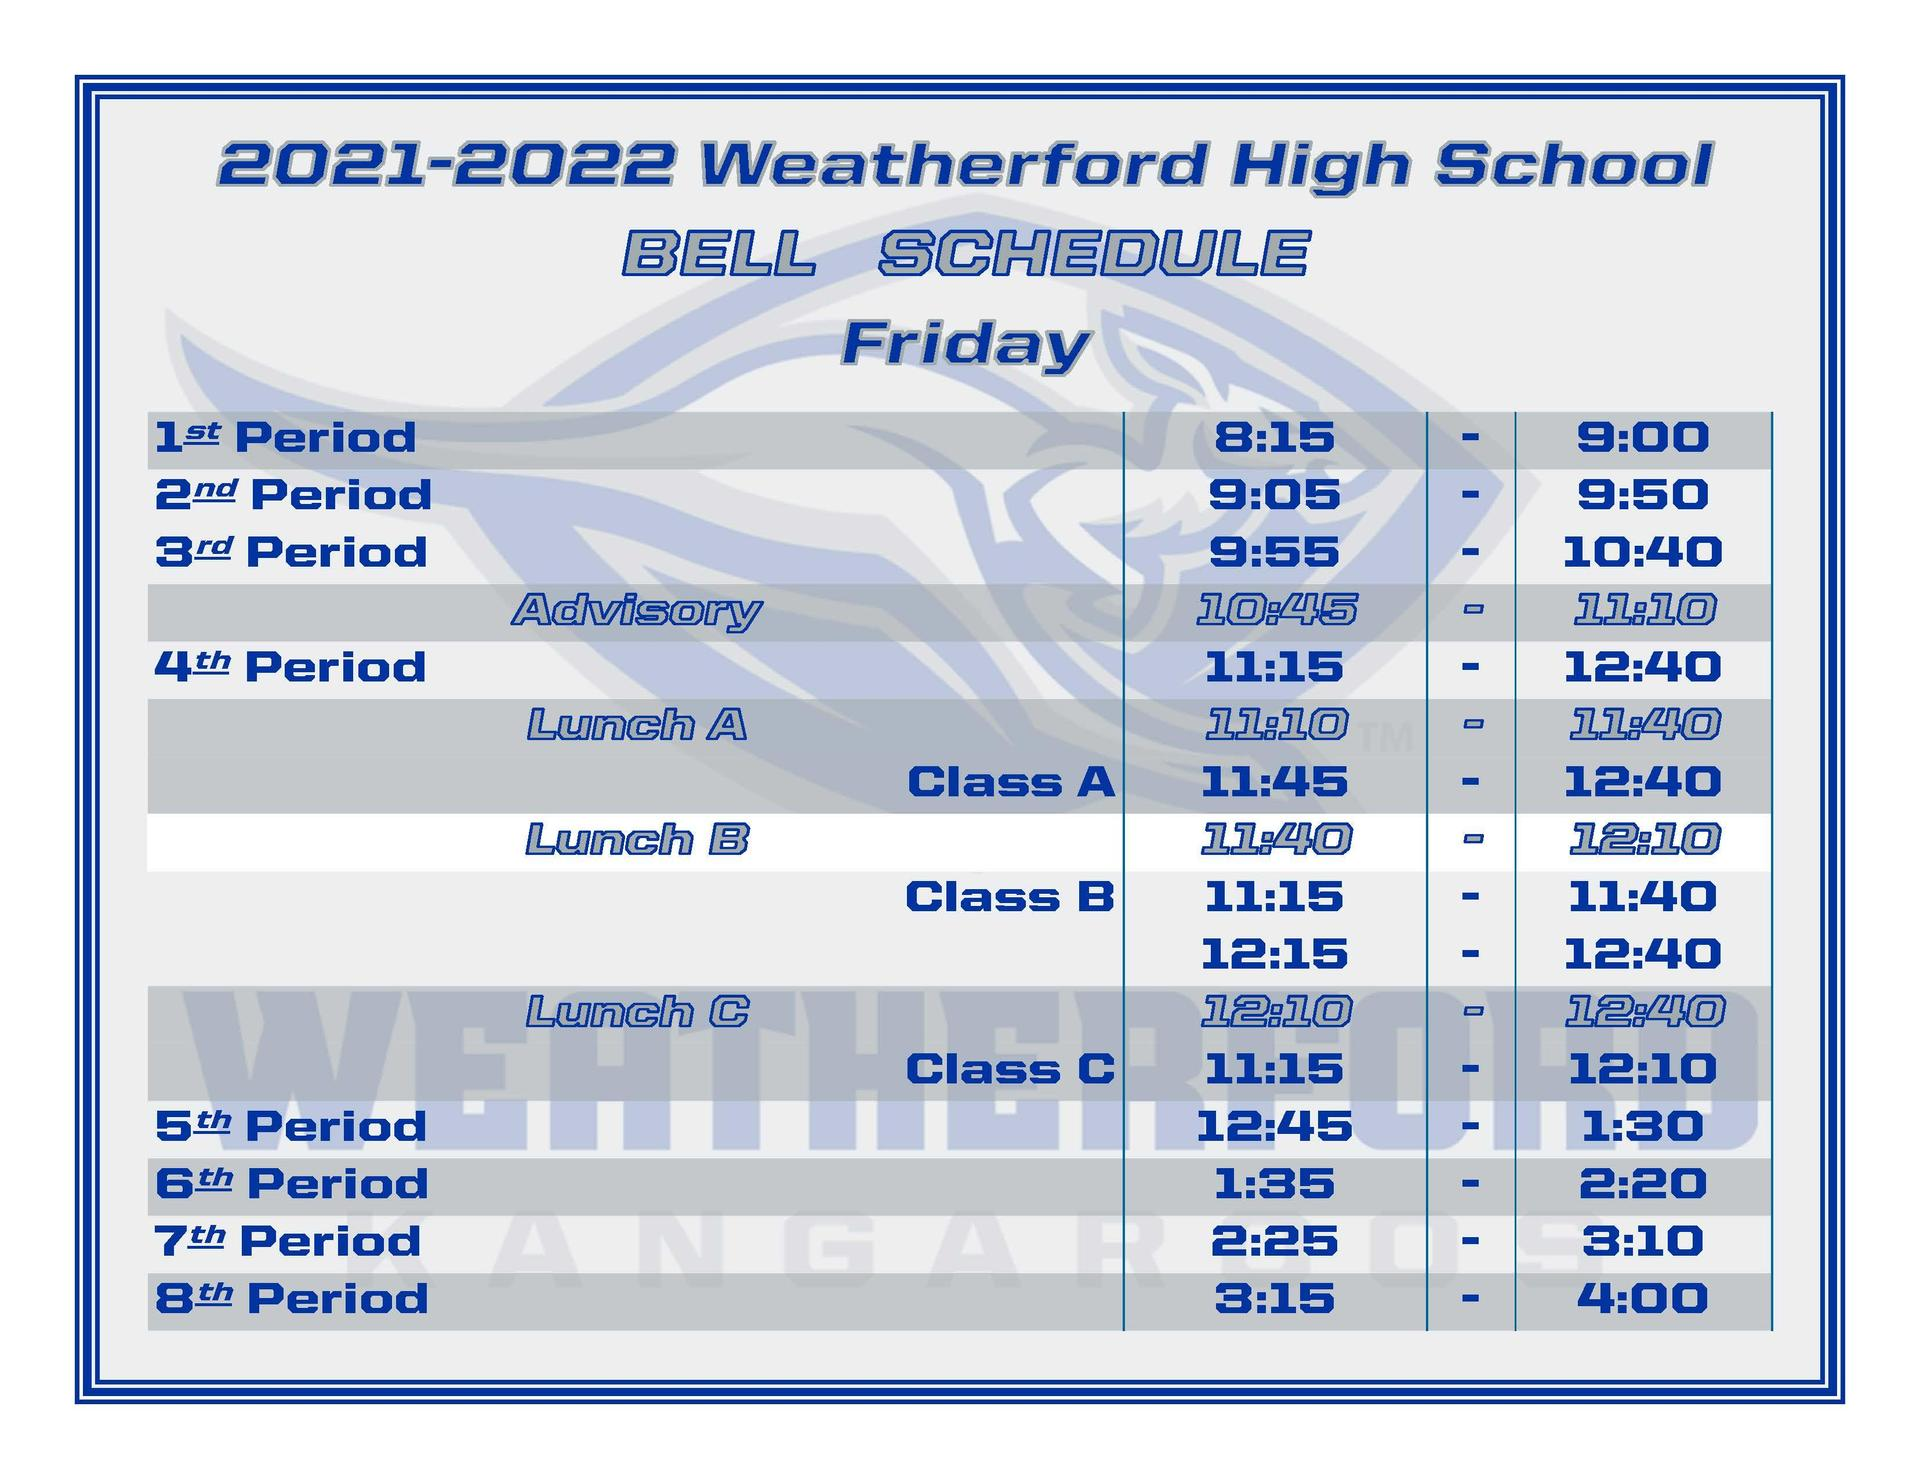 WHS Friday Bell Schedule